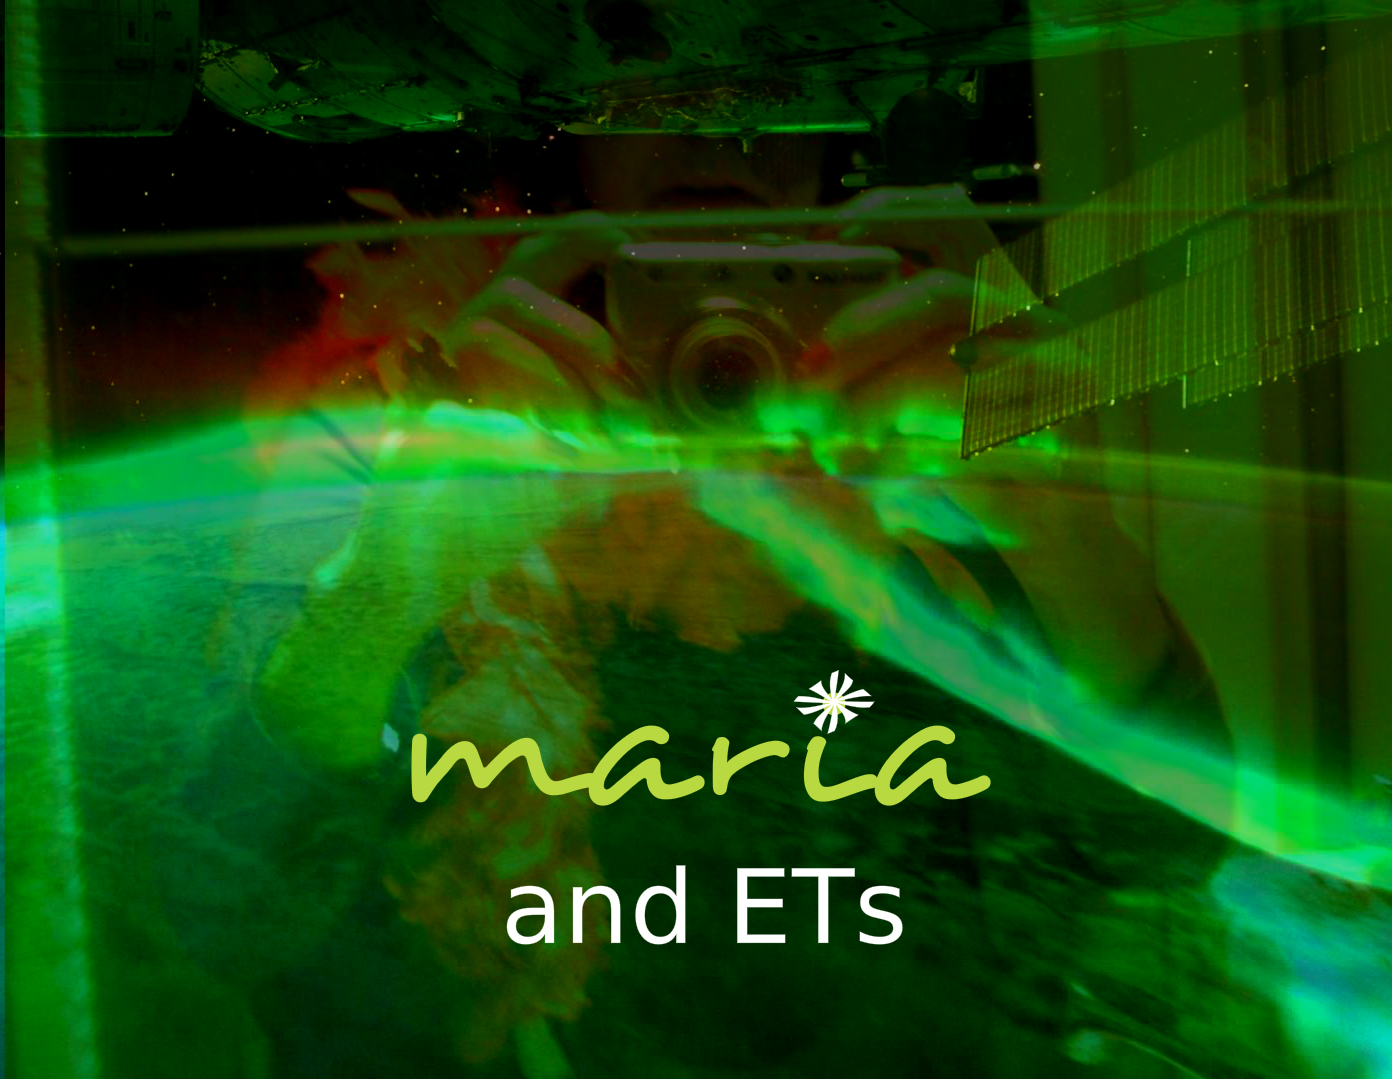 Maria and ET's